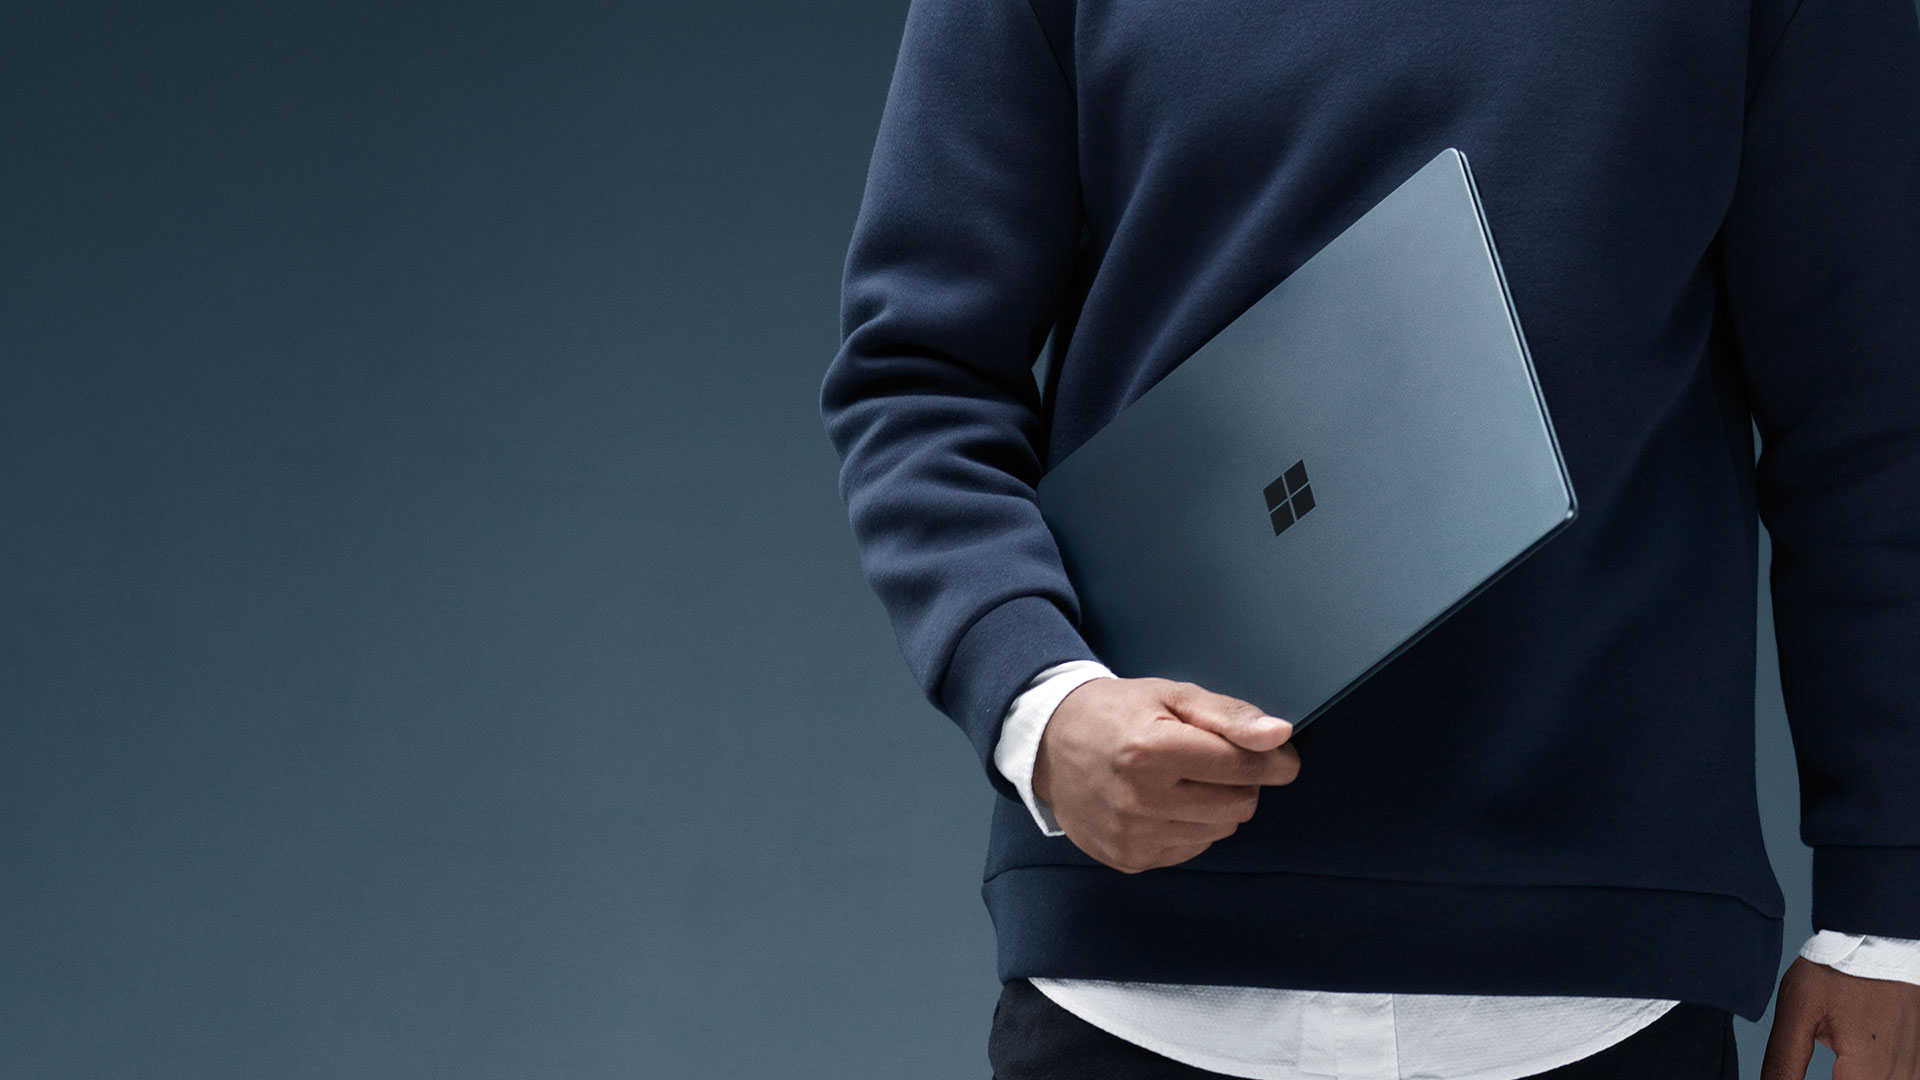 Mann mit Surface Laptop in Kobalt Blau